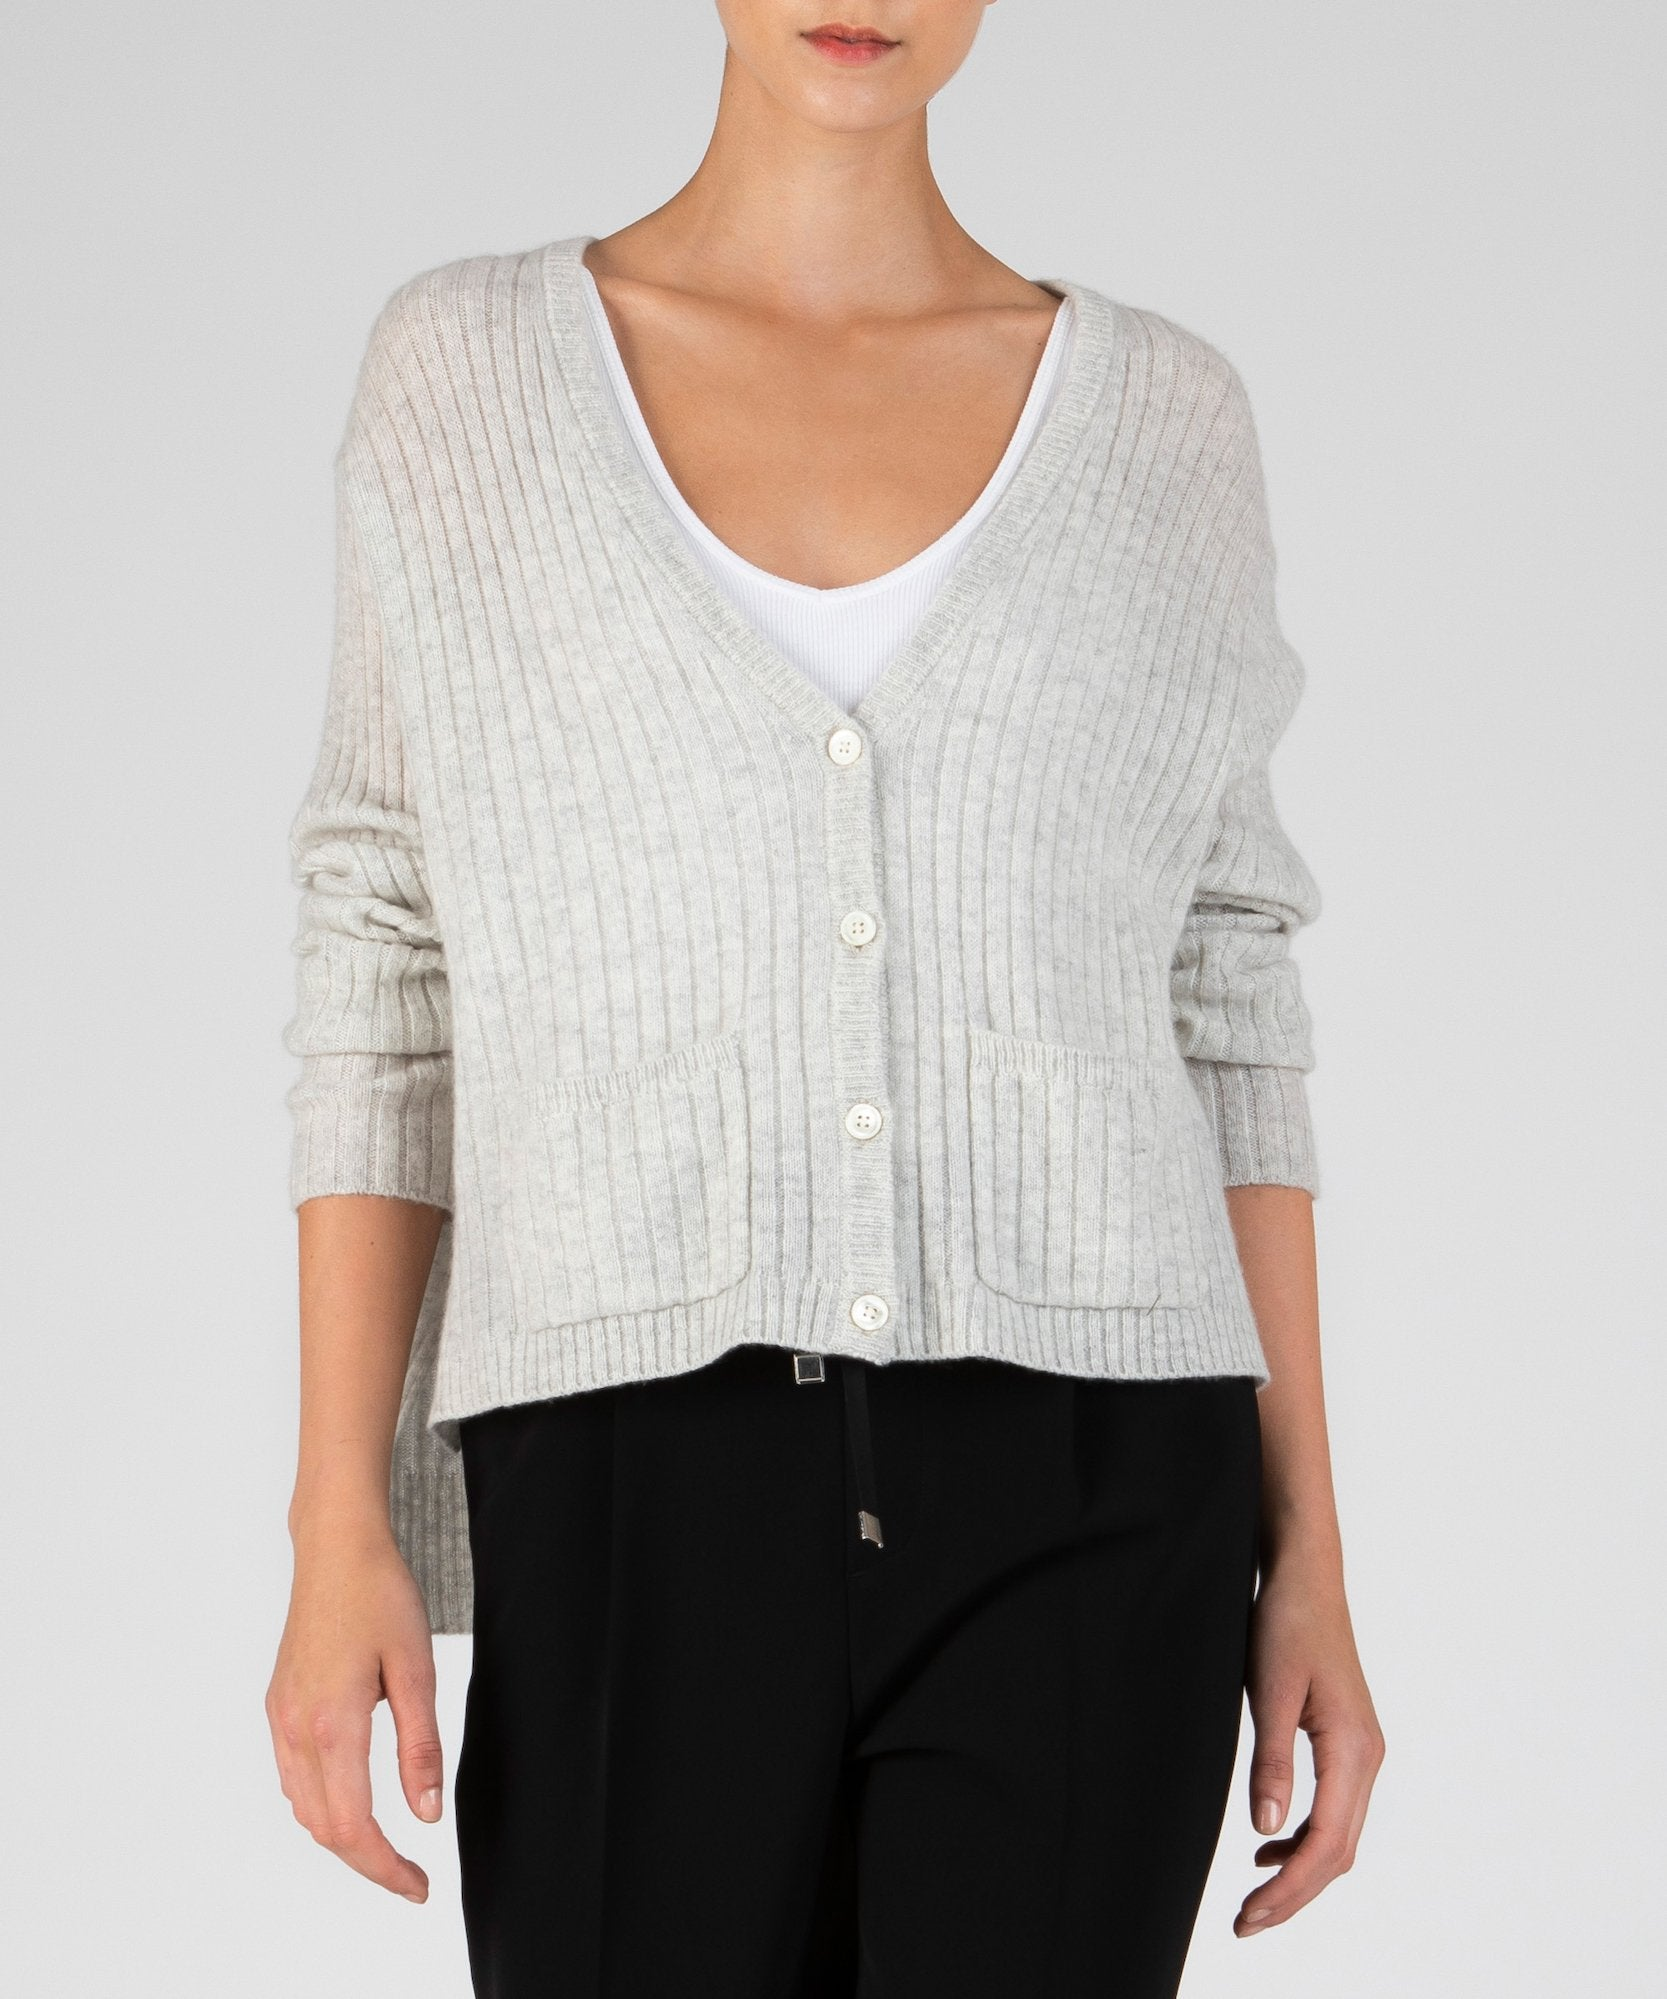 Alabaster Cashmere Deep V-Neck Cardigan - Women's Luxe Sweater by ATM Anthony Thomas Melillo